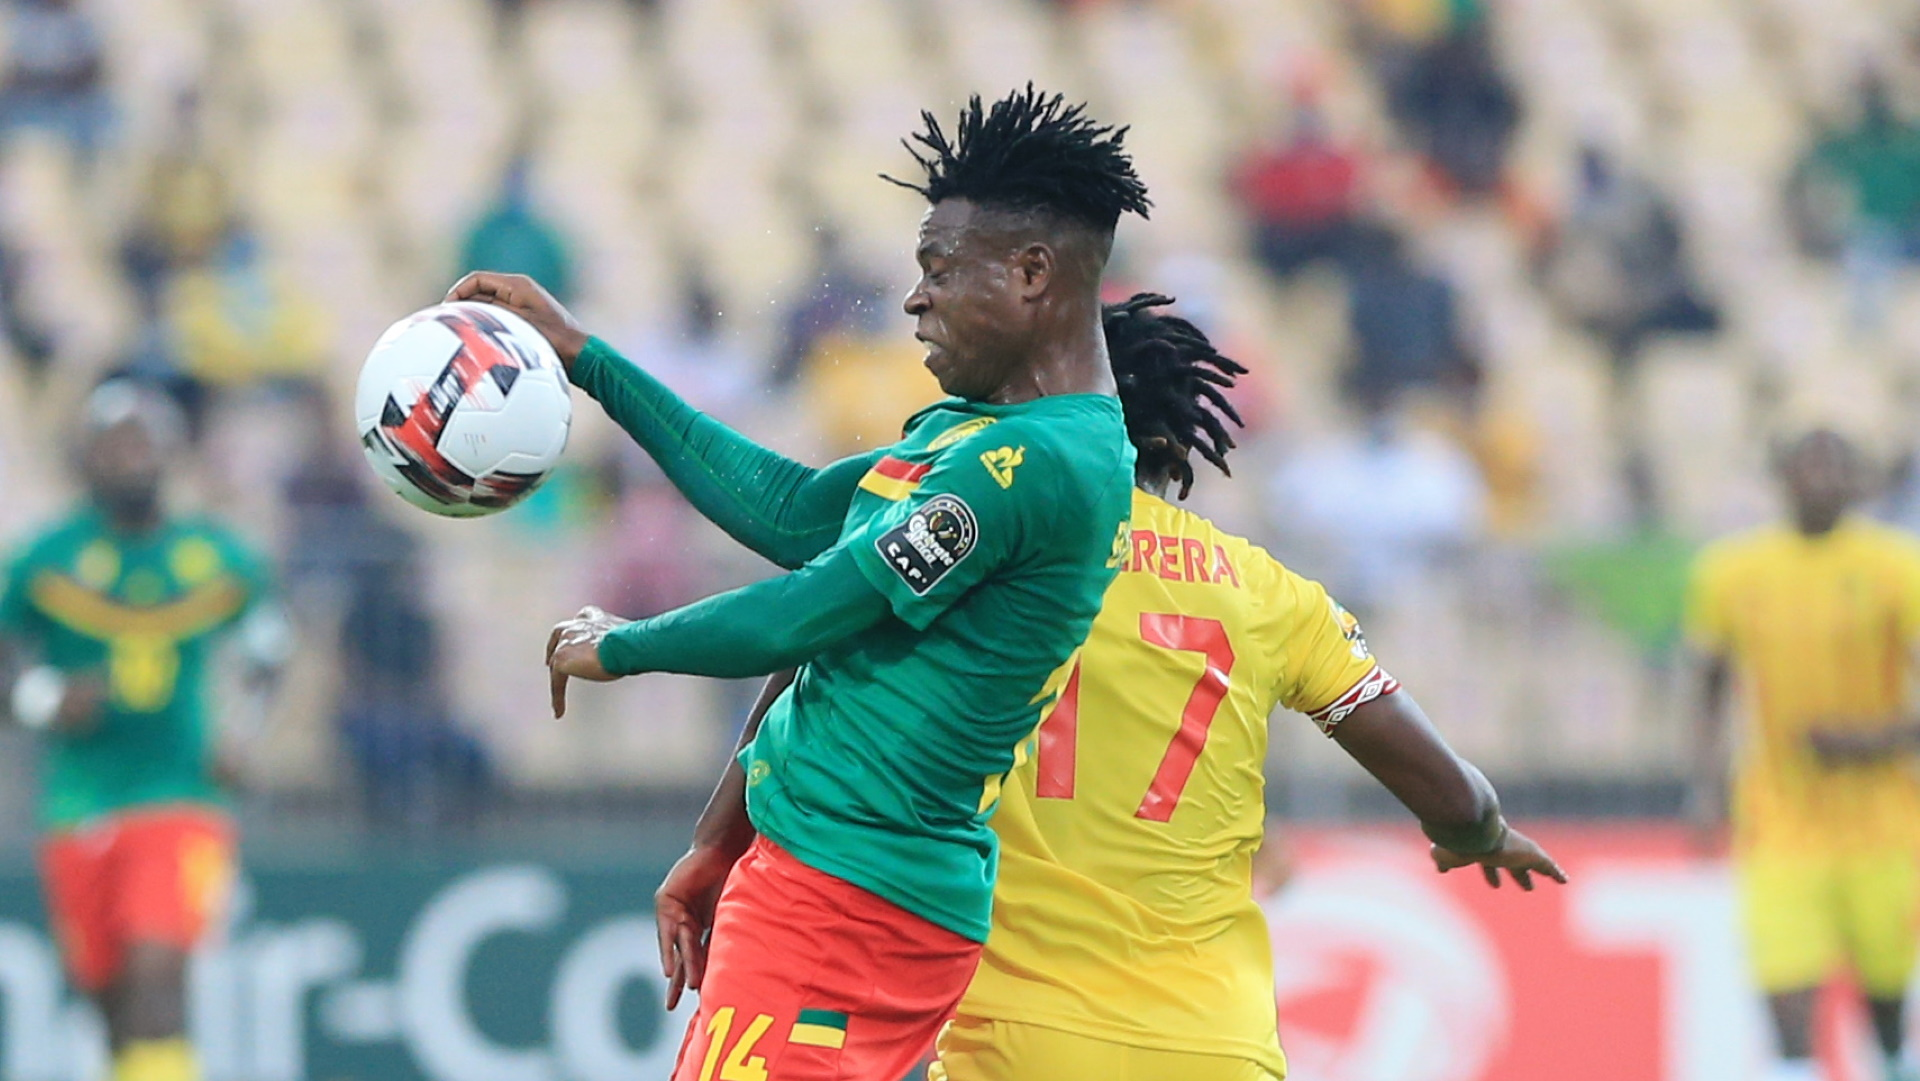 CHAN 2021: Pool A and B Match Day 1 Round Up